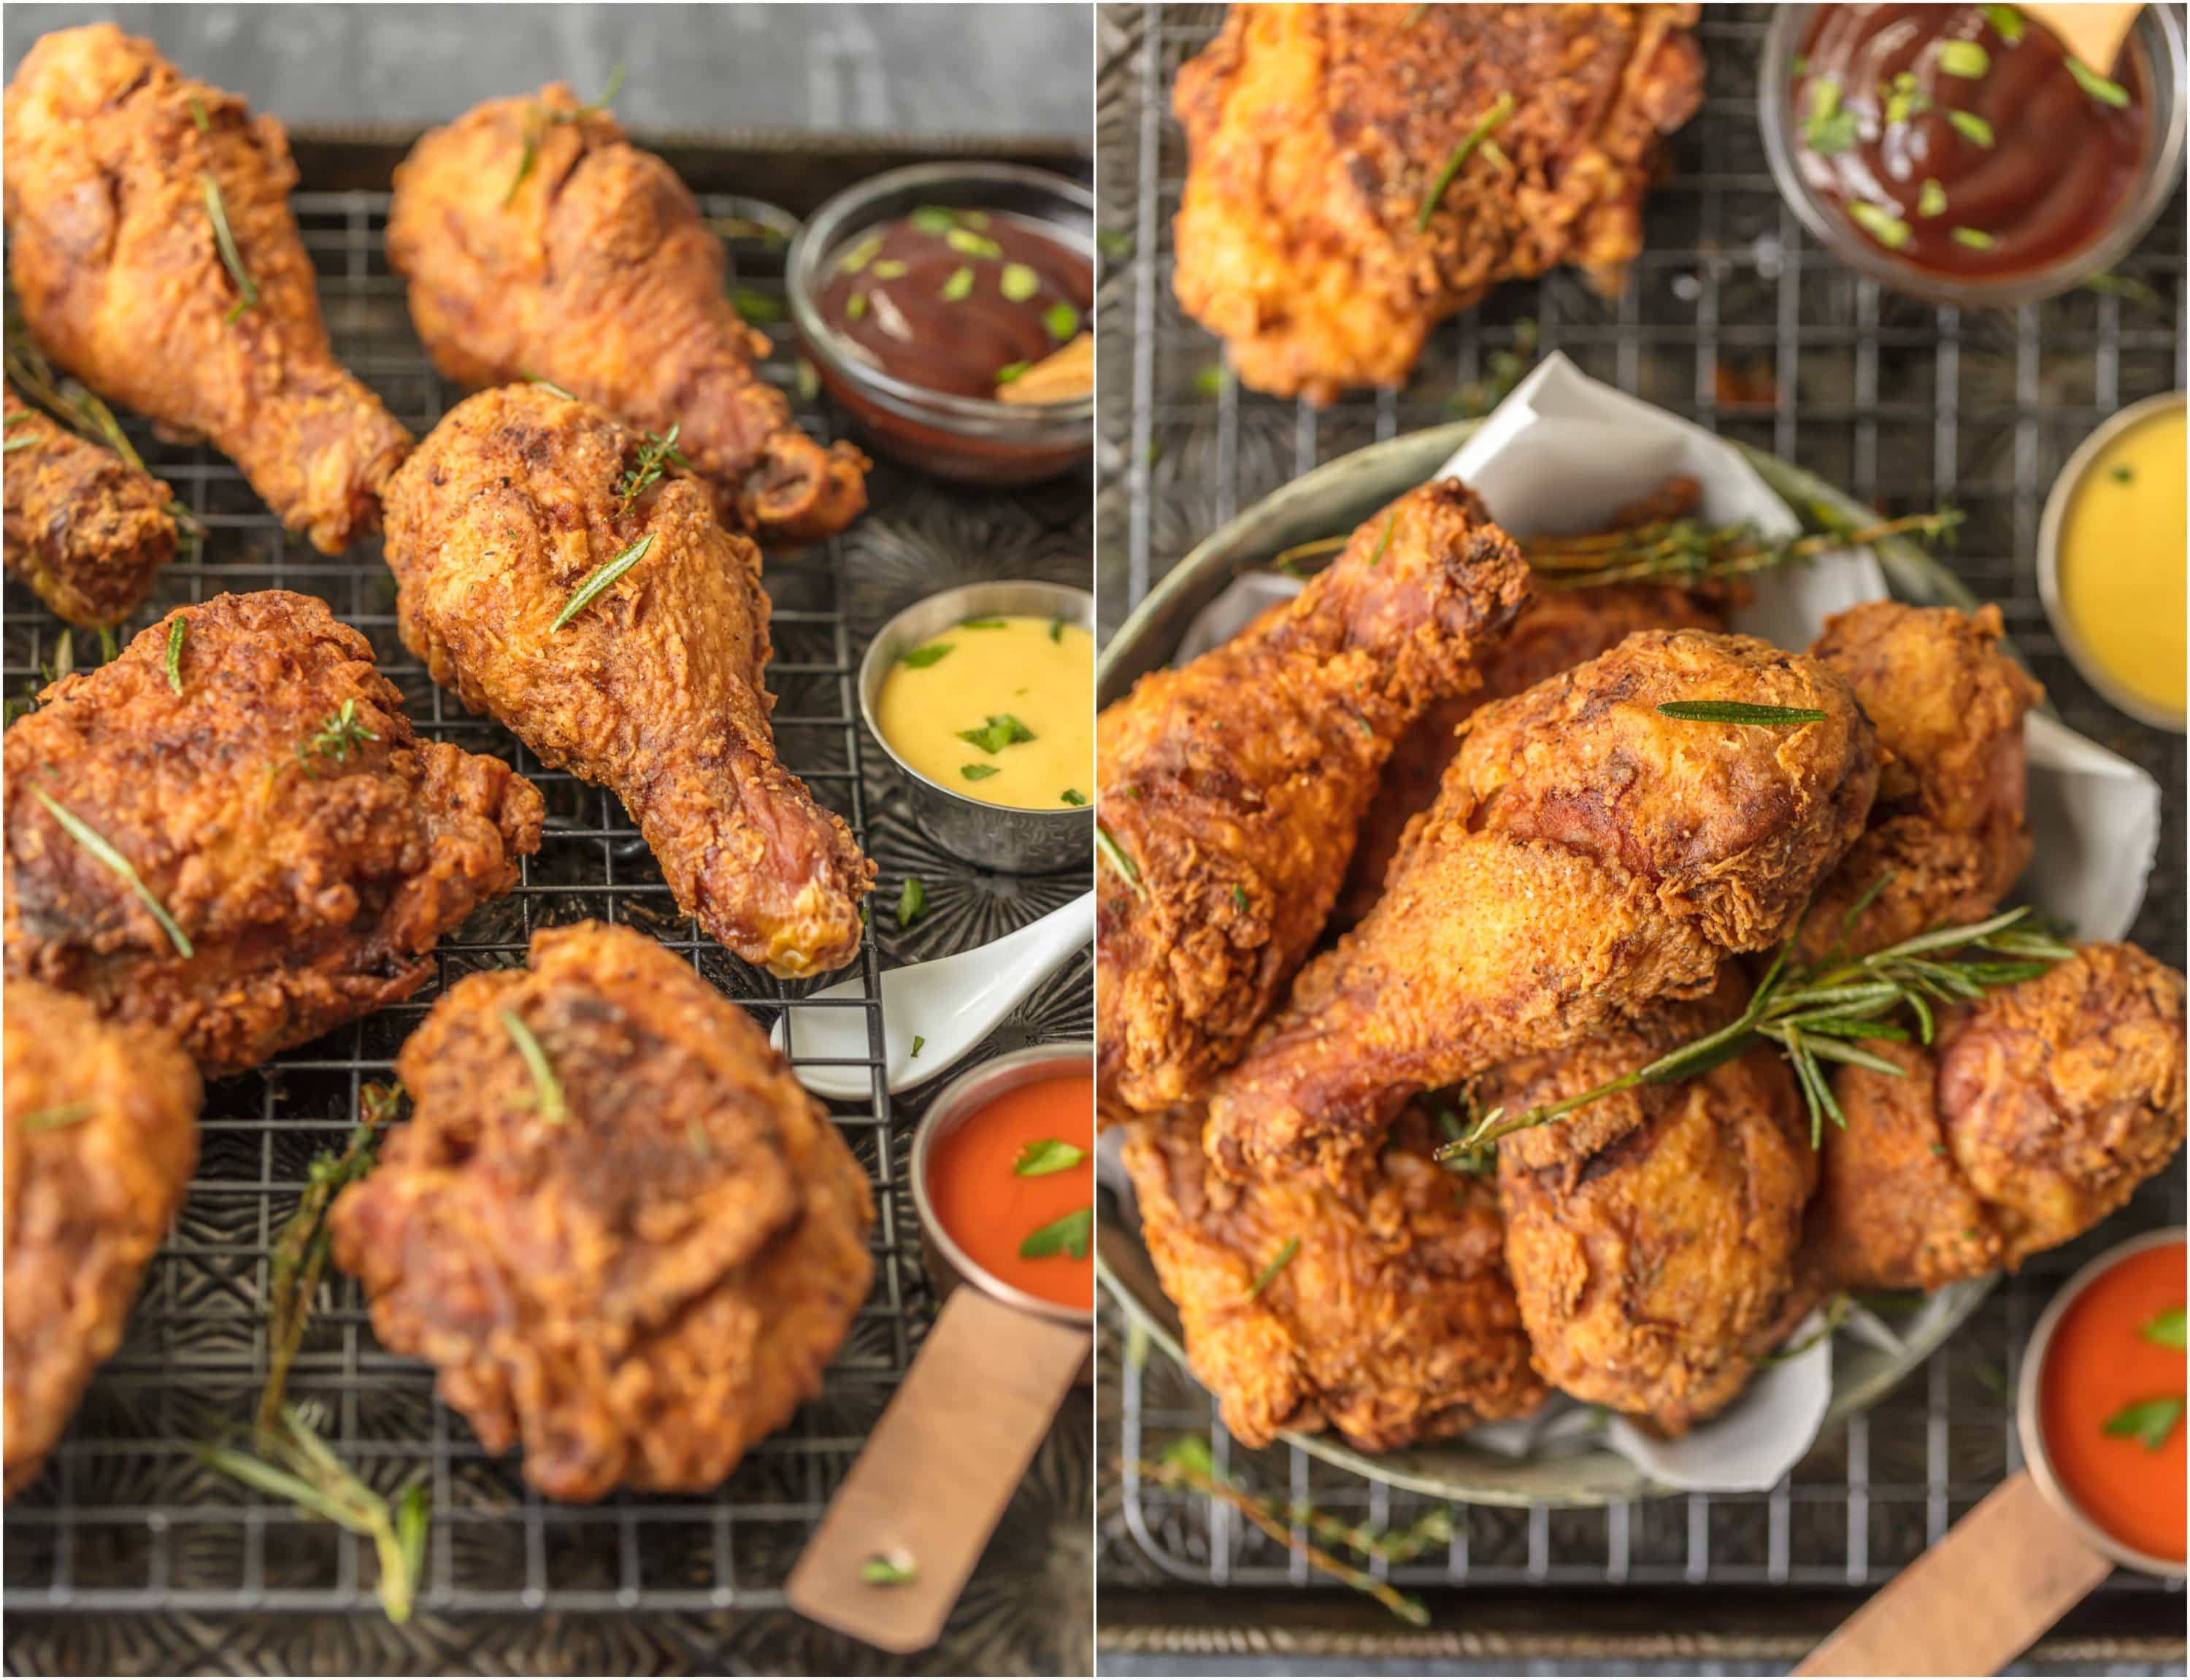 fried chicken with dipping sauces